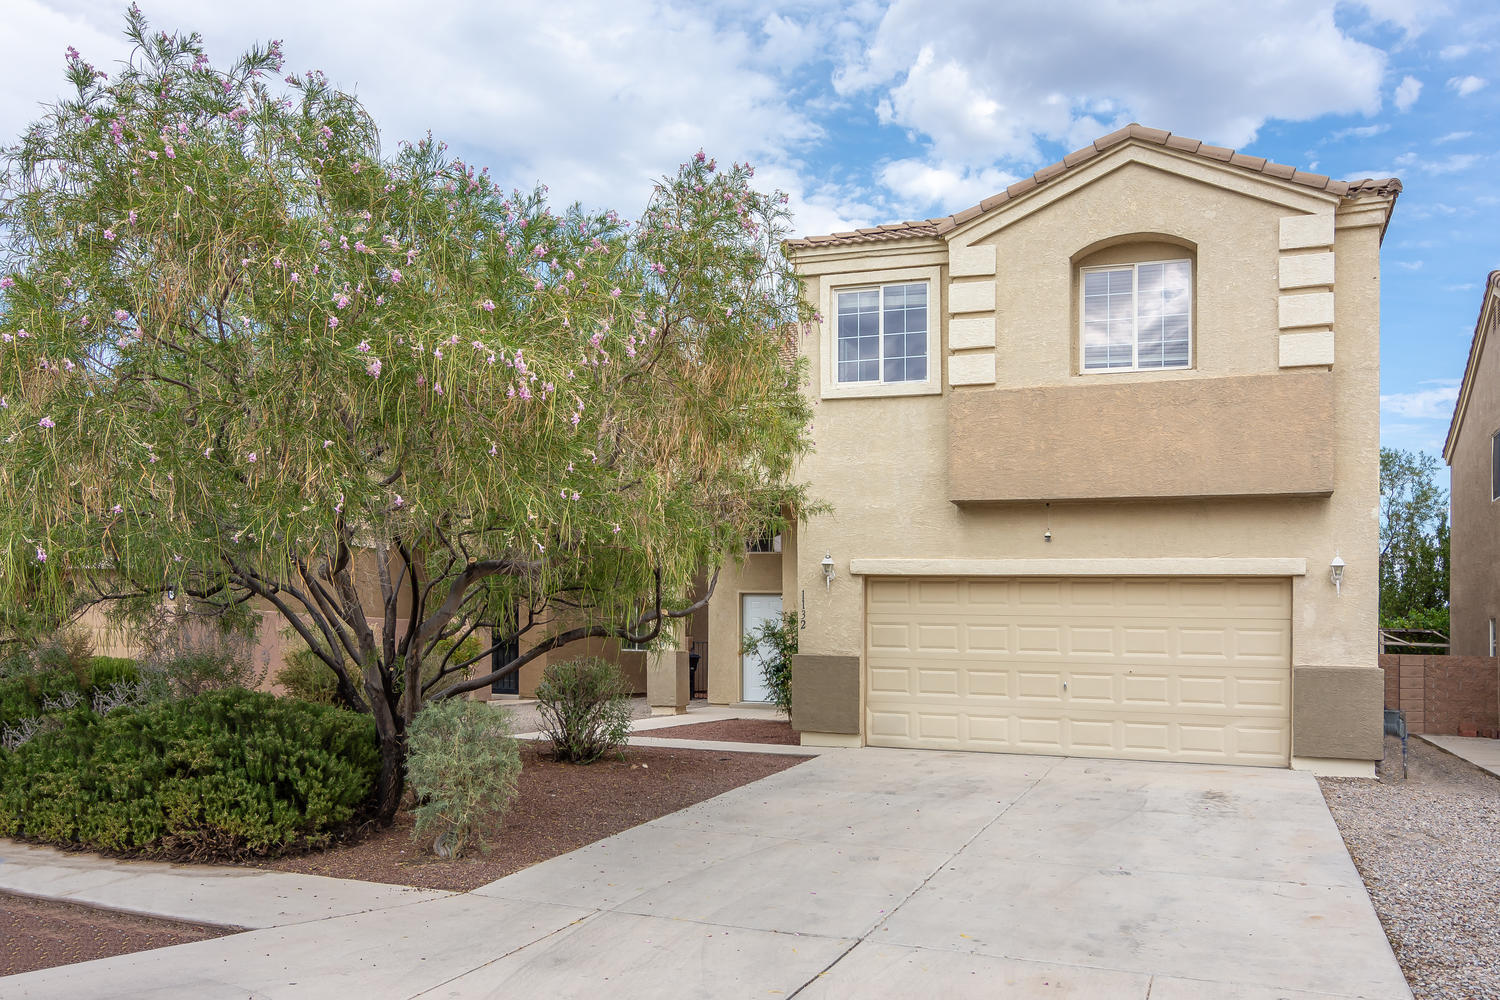 Northwest Albuquerque and Northwest Heights Homes for Sale -  Cul De Sac,  1132 NW Makian Place